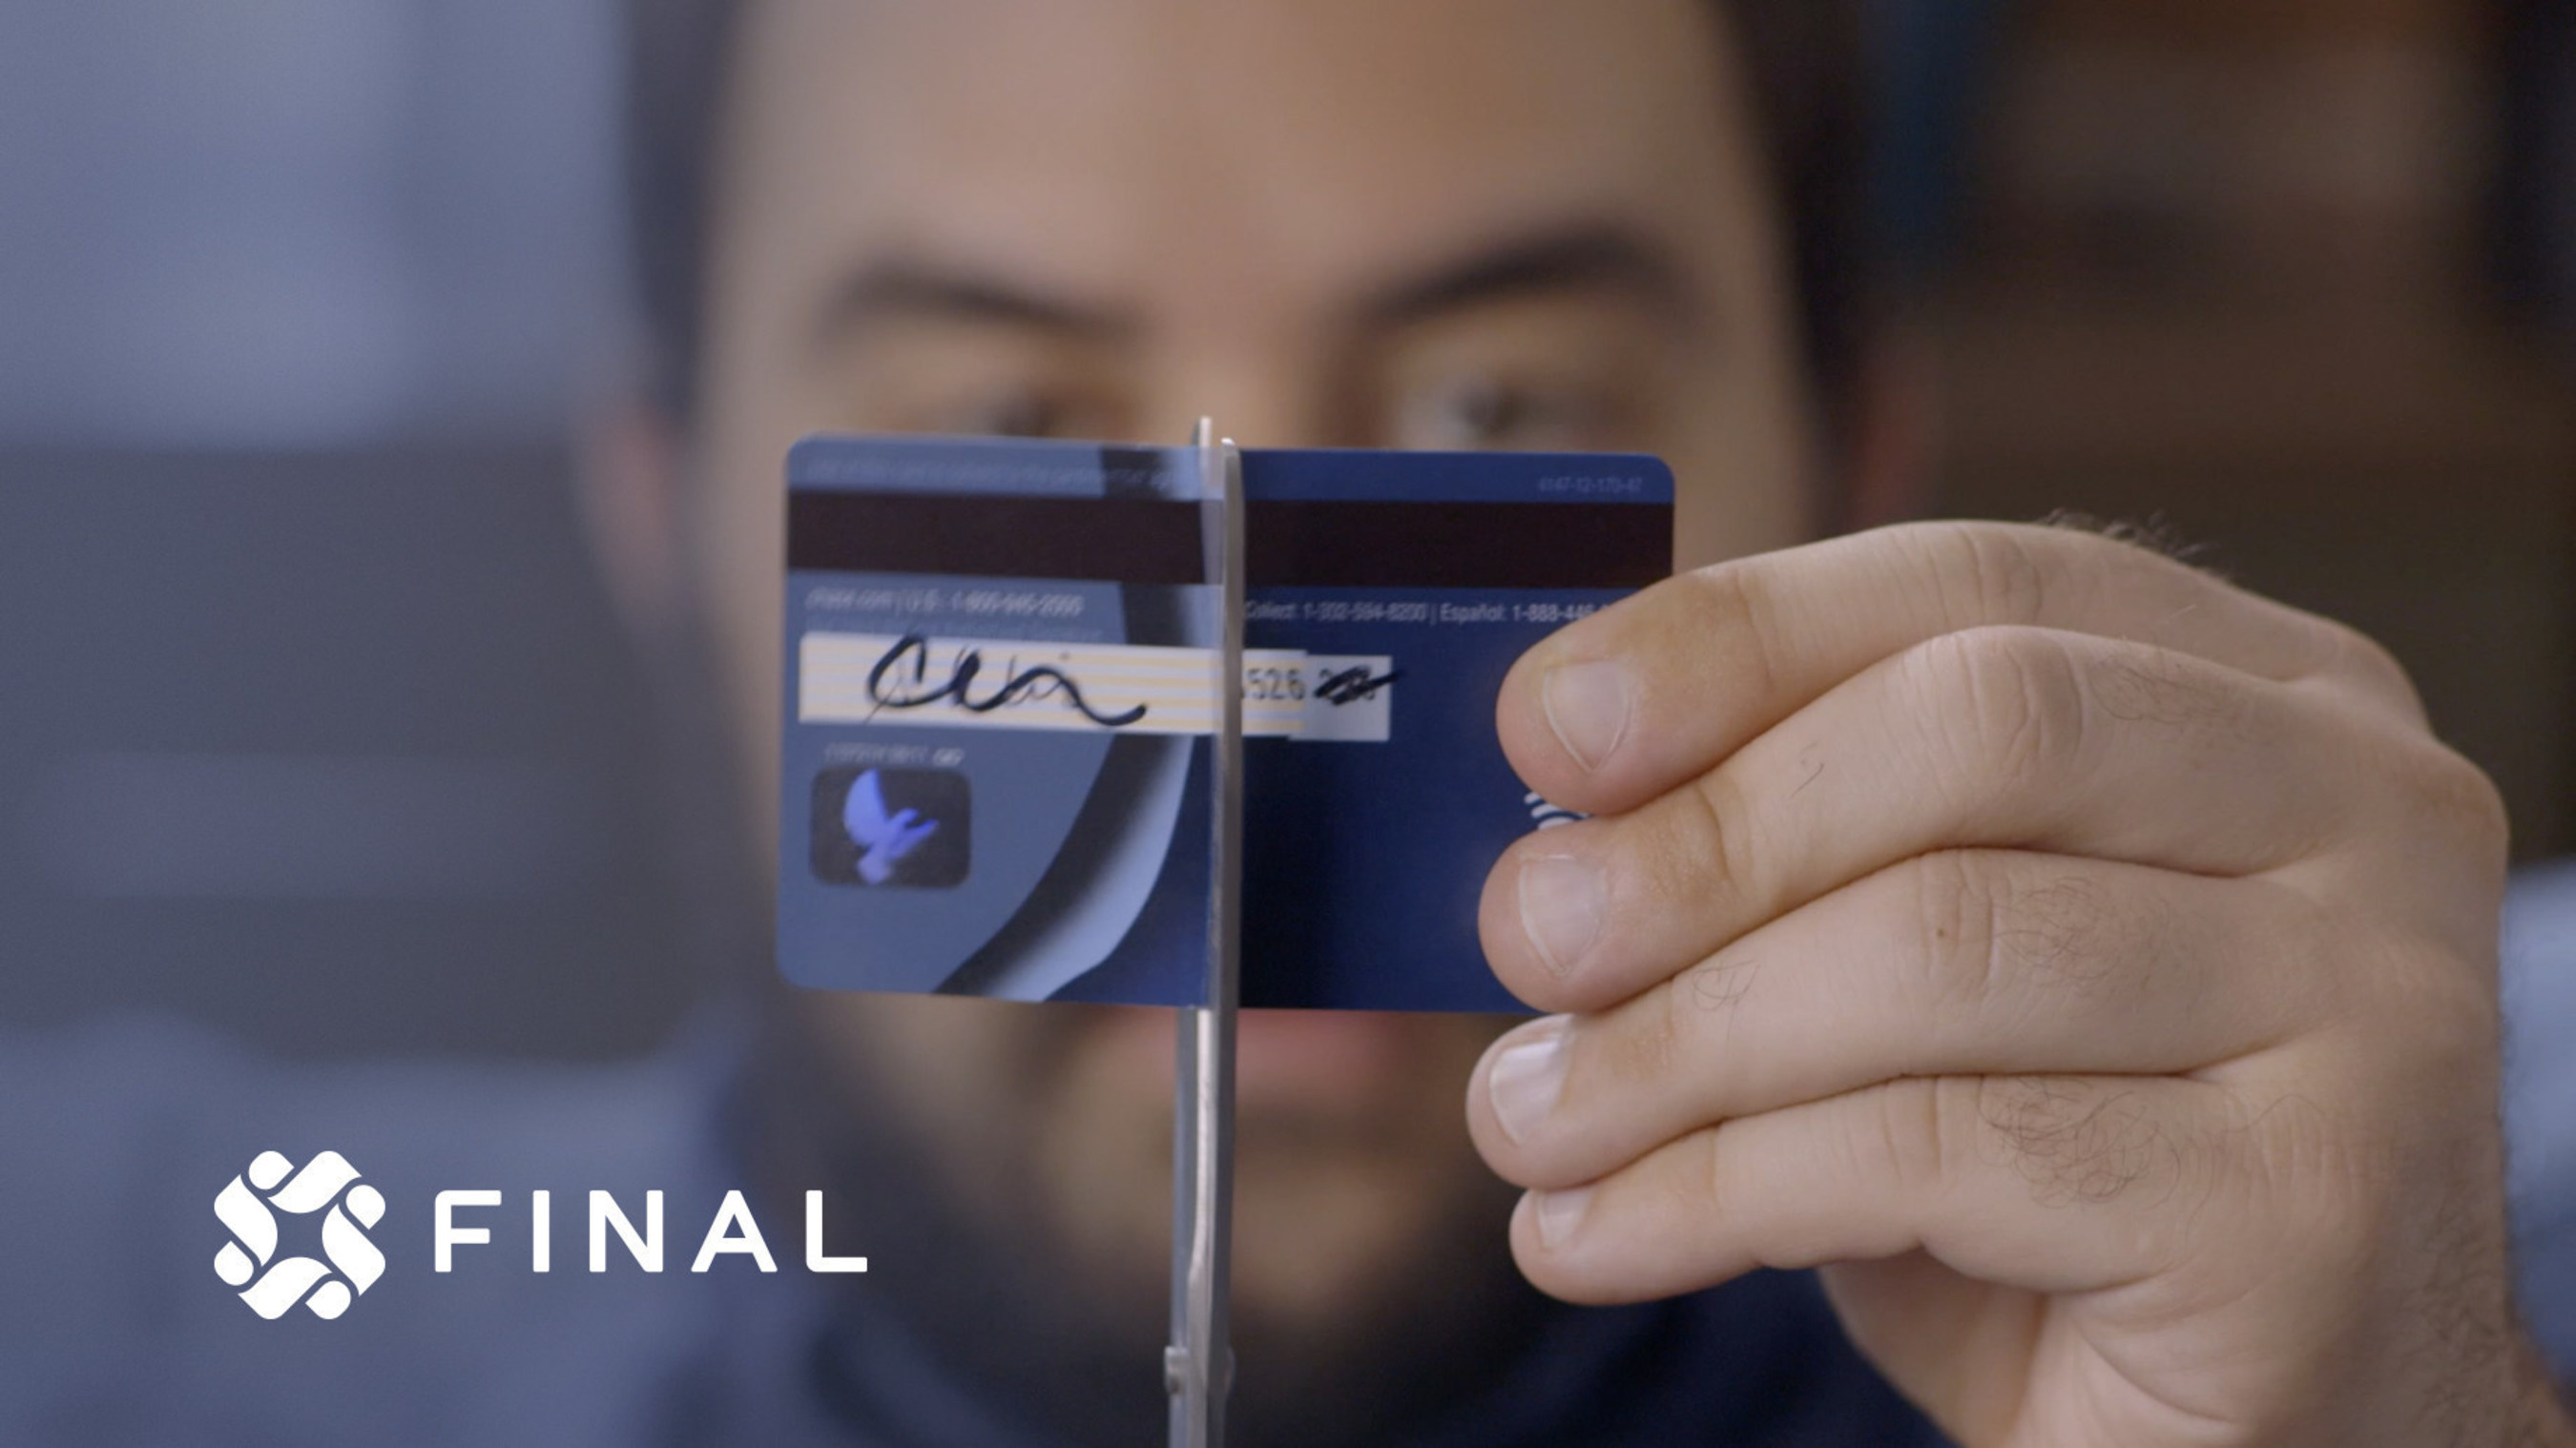 The credit card is broken. We aim to fix it.